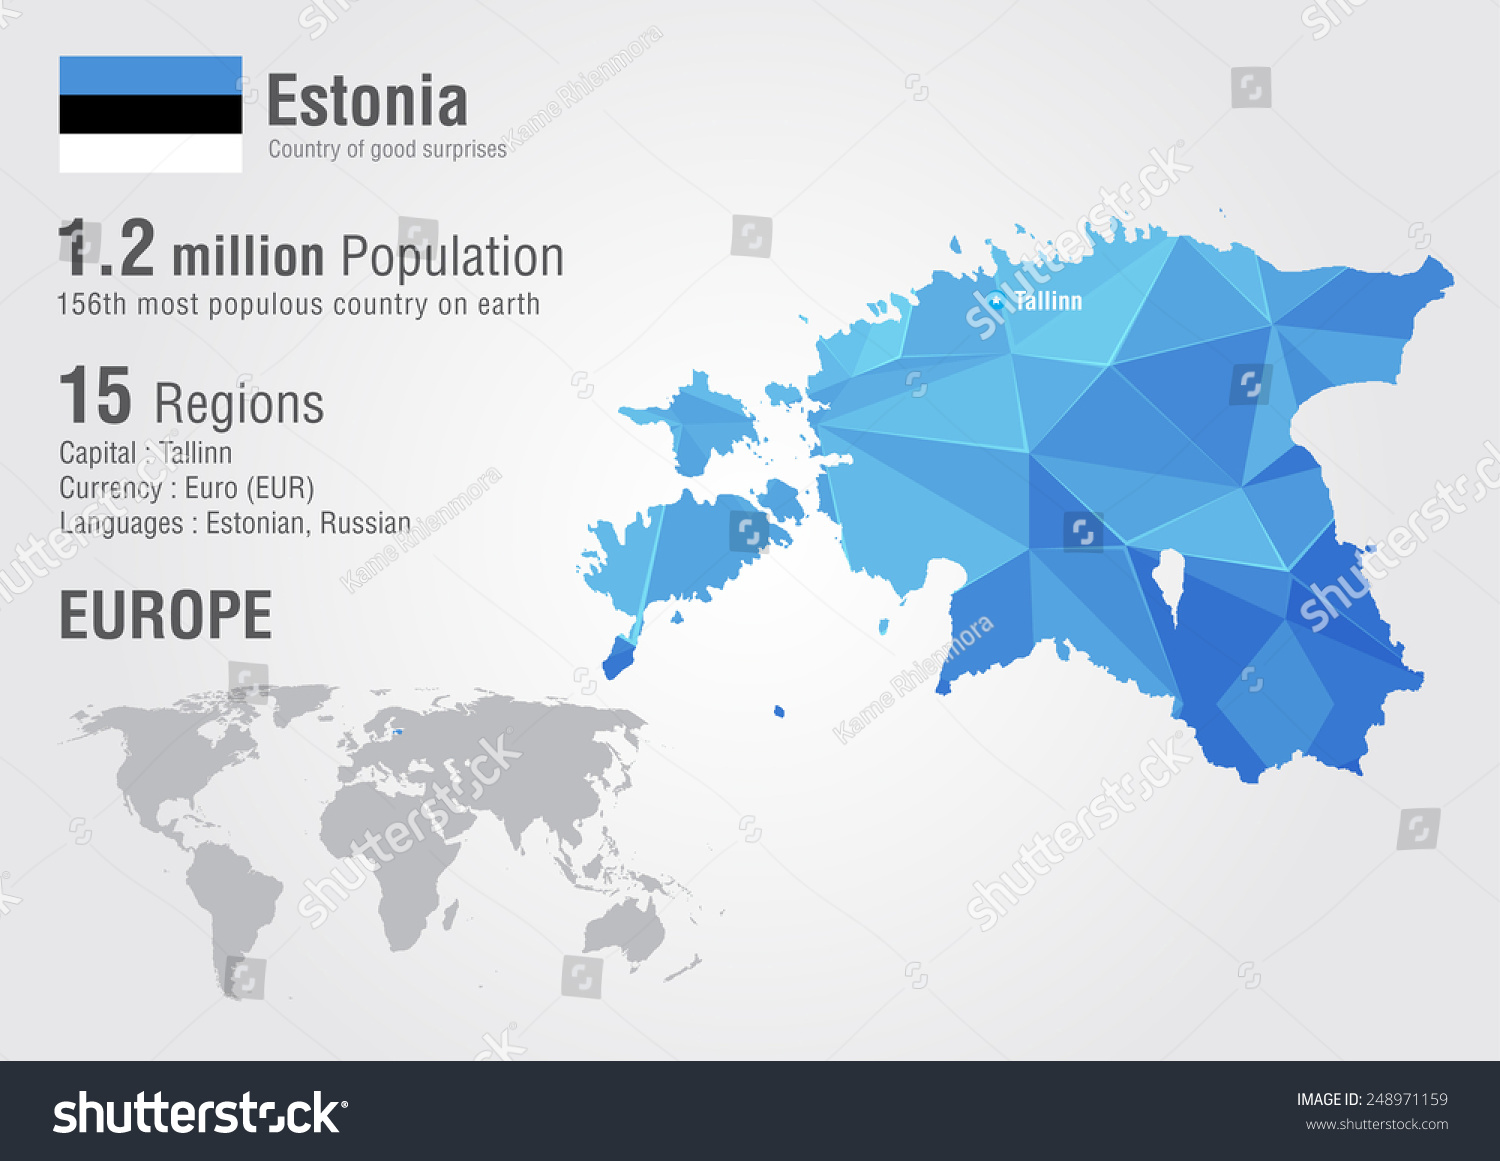 Estonia world map pixel diamond texture vector de stock248971159 estonia world map with a pixel diamond texture world geography gumiabroncs Gallery